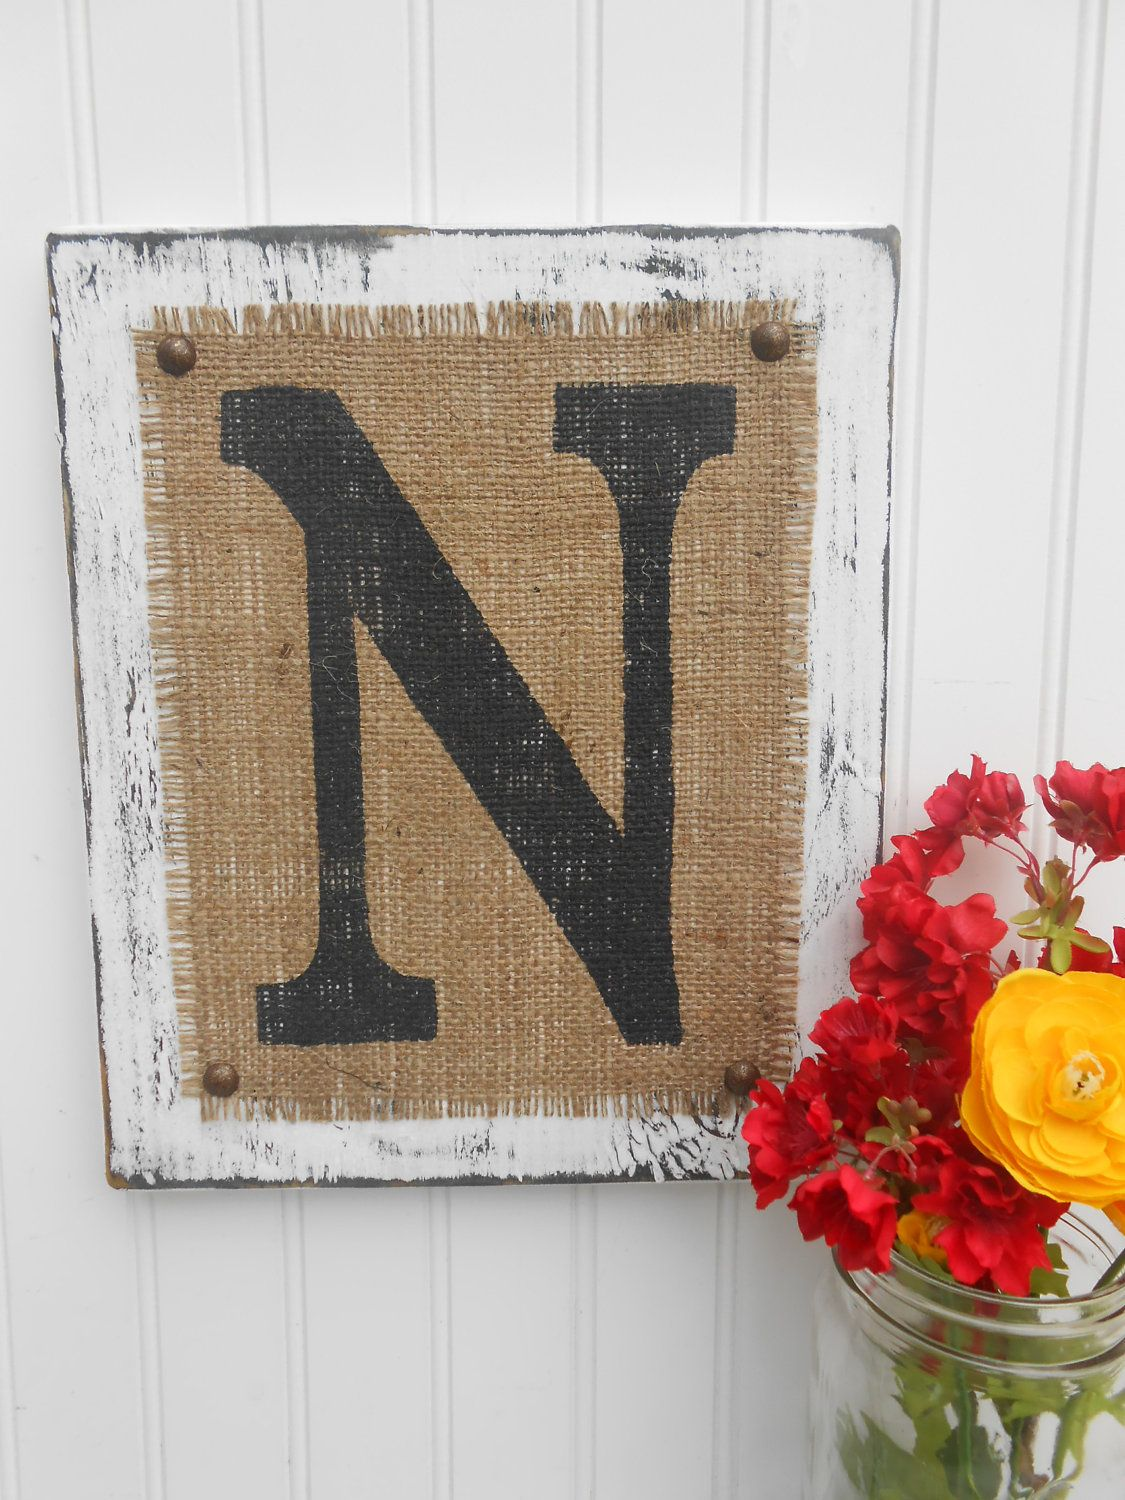 Rustic wedding burlap sign, reception decoration, Monogram, A through j, n,  a, q, k, r, l, f, b